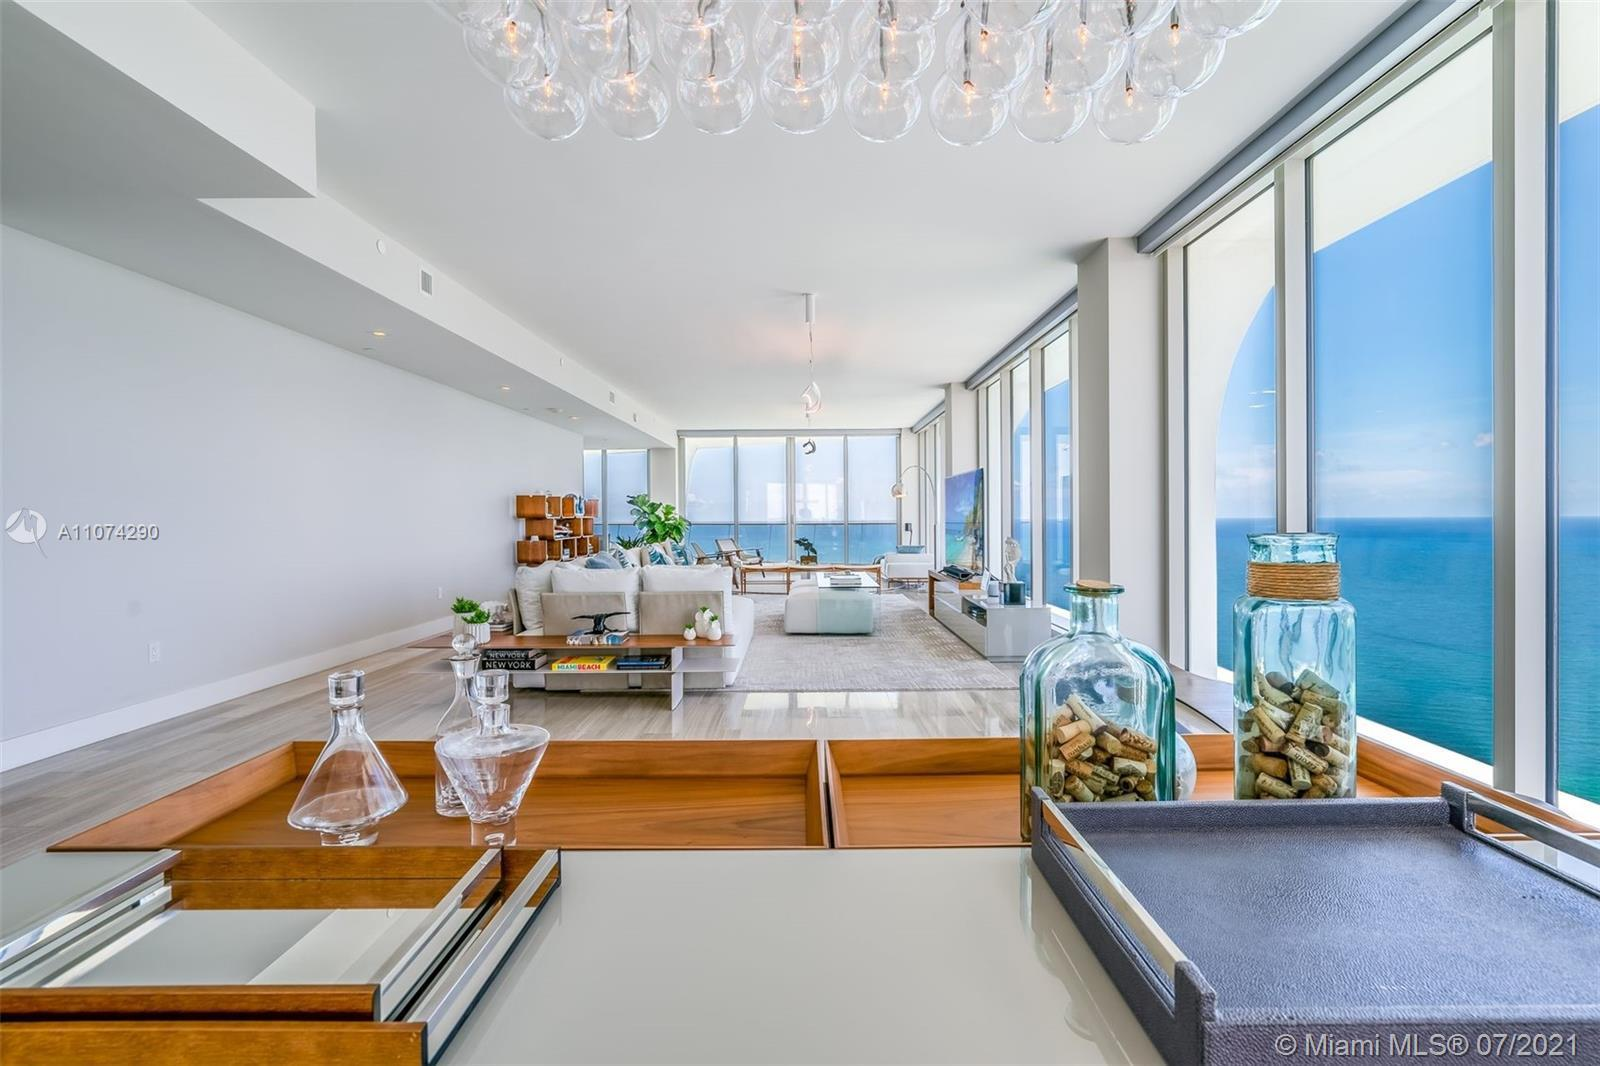 1 of only 8 Model-E3 units at Jade Signature Condominium designed by Pritzker prize-winning Swiss ar